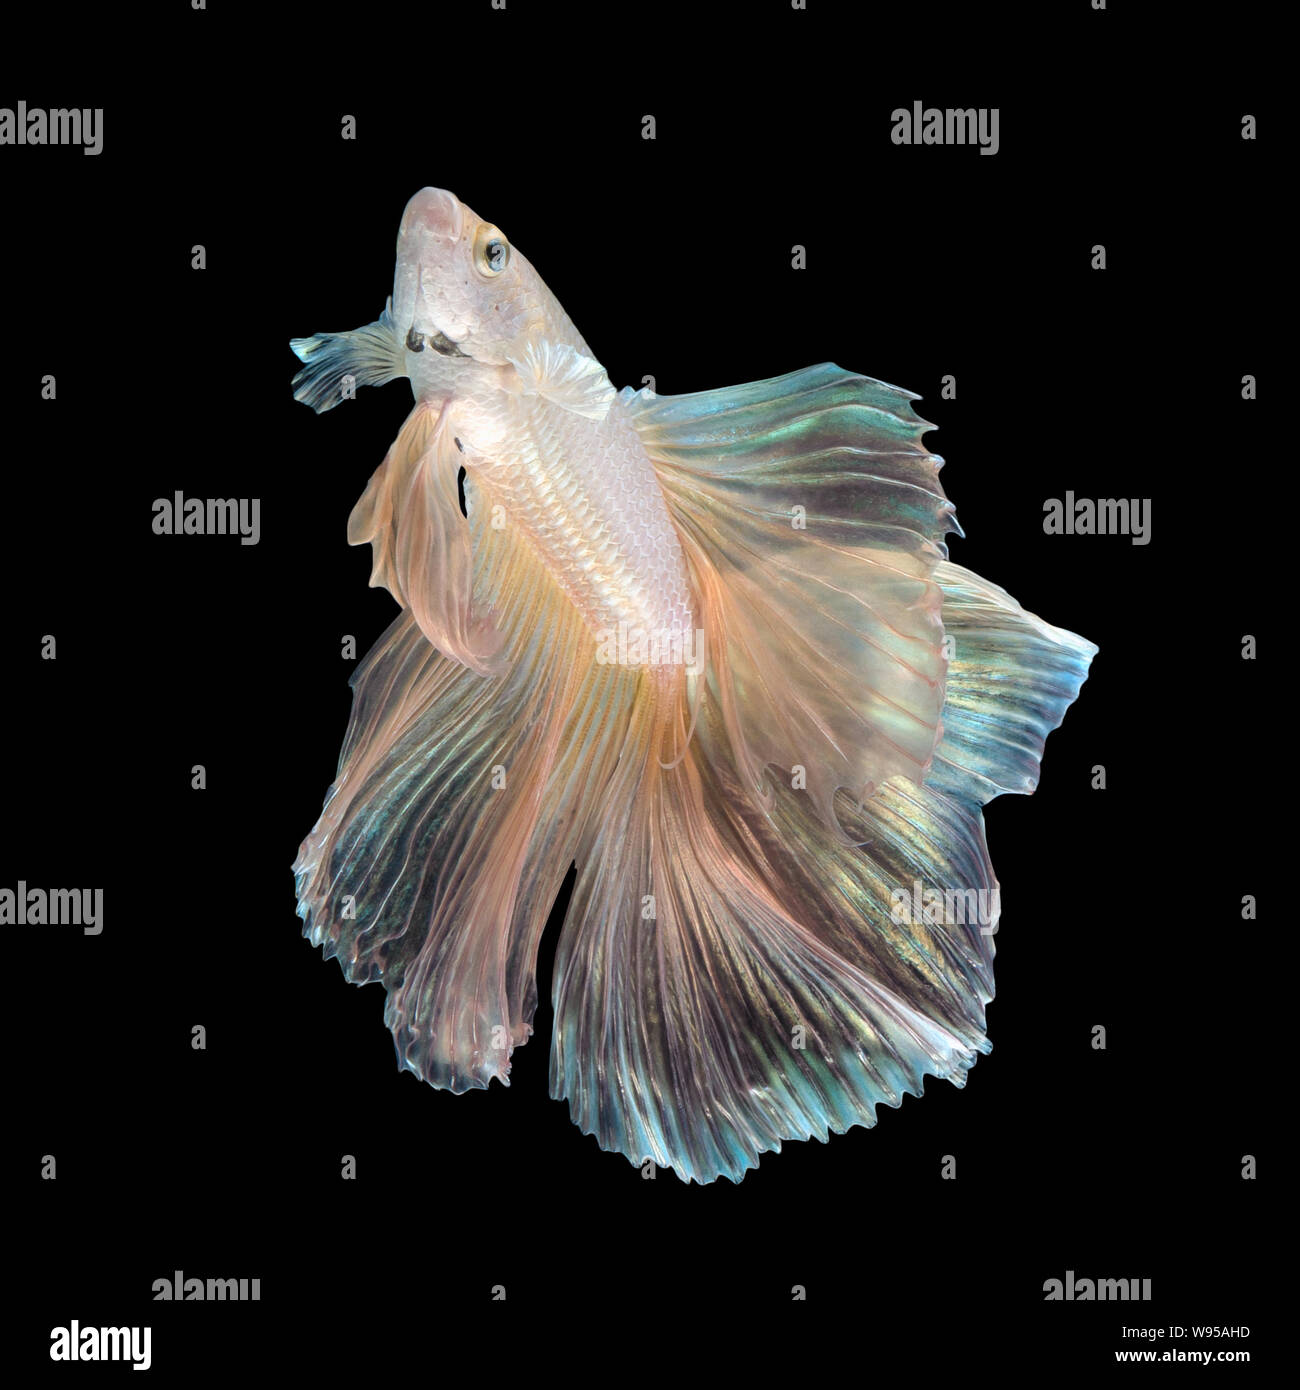 Close up art movement of Betta fish or Siamese fighting fish isolated on black background Stock Photo